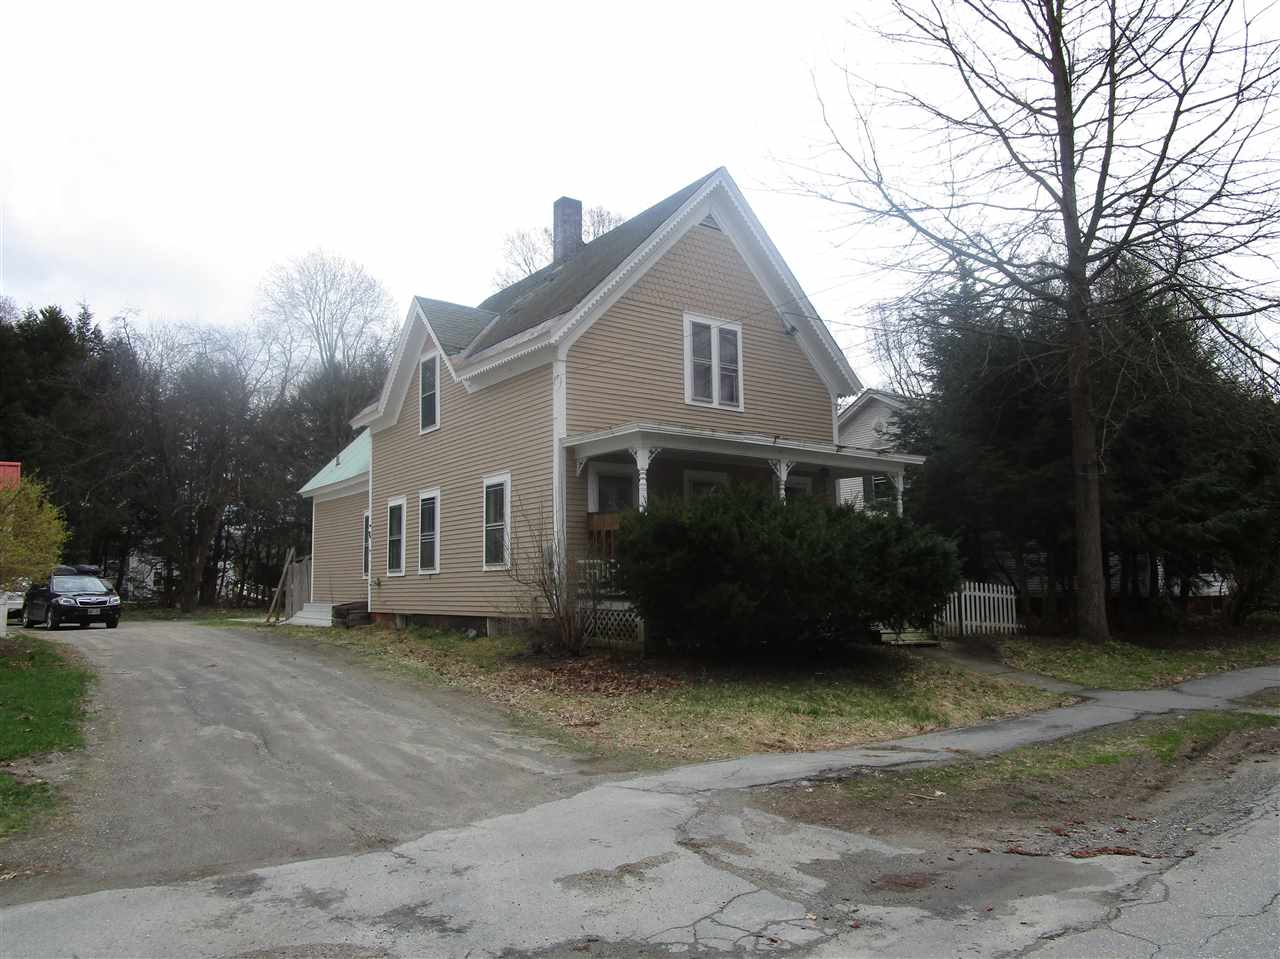 VILLAGE OF SAXTONS RIVER IN TOWN OF ROCKINGHAM VT Homes for sale